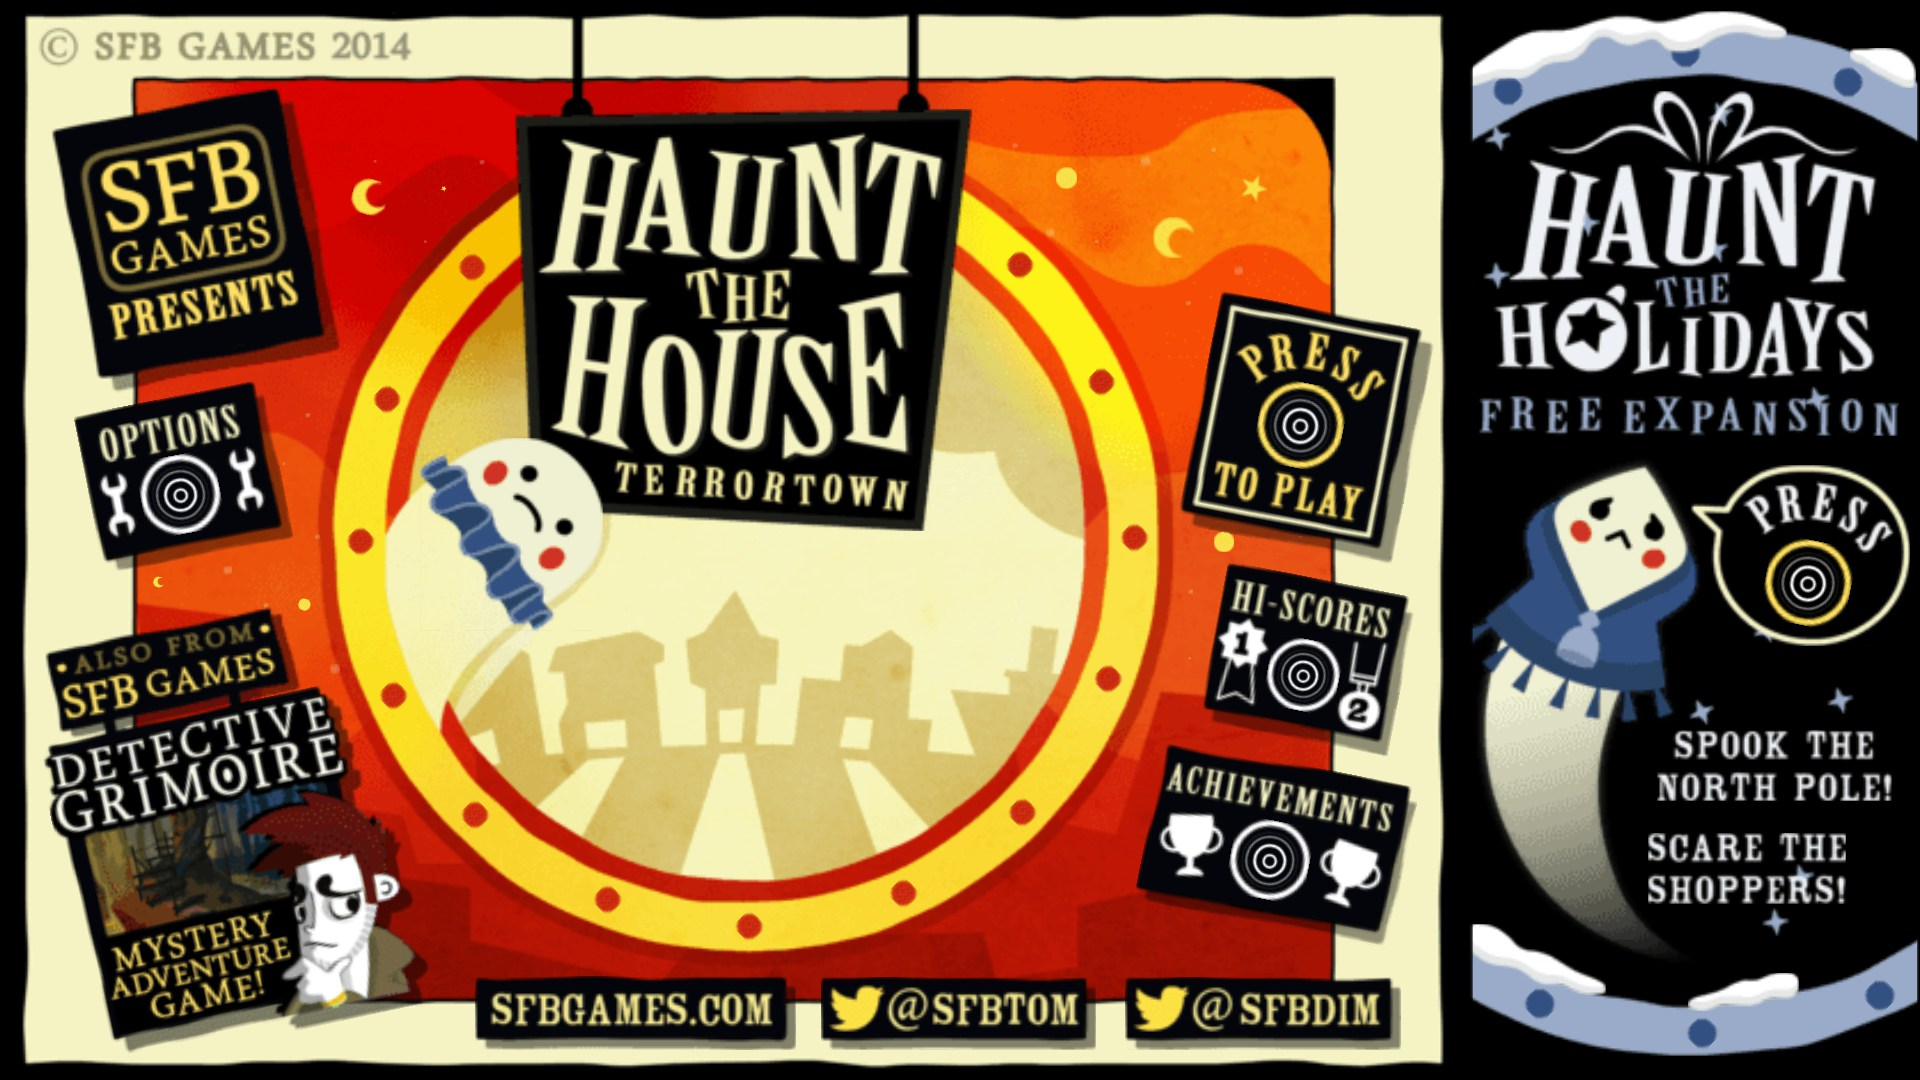 Haunt the House Terrortown Juegos para Android Haunt the House